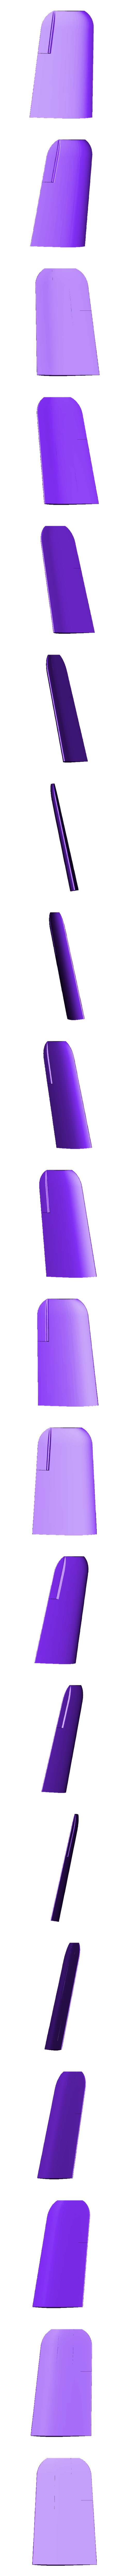 Undercambered_Wing_Left_Outer.stl Download free STL file Flyer Mk. 1 • 3D printing object, billbo1958